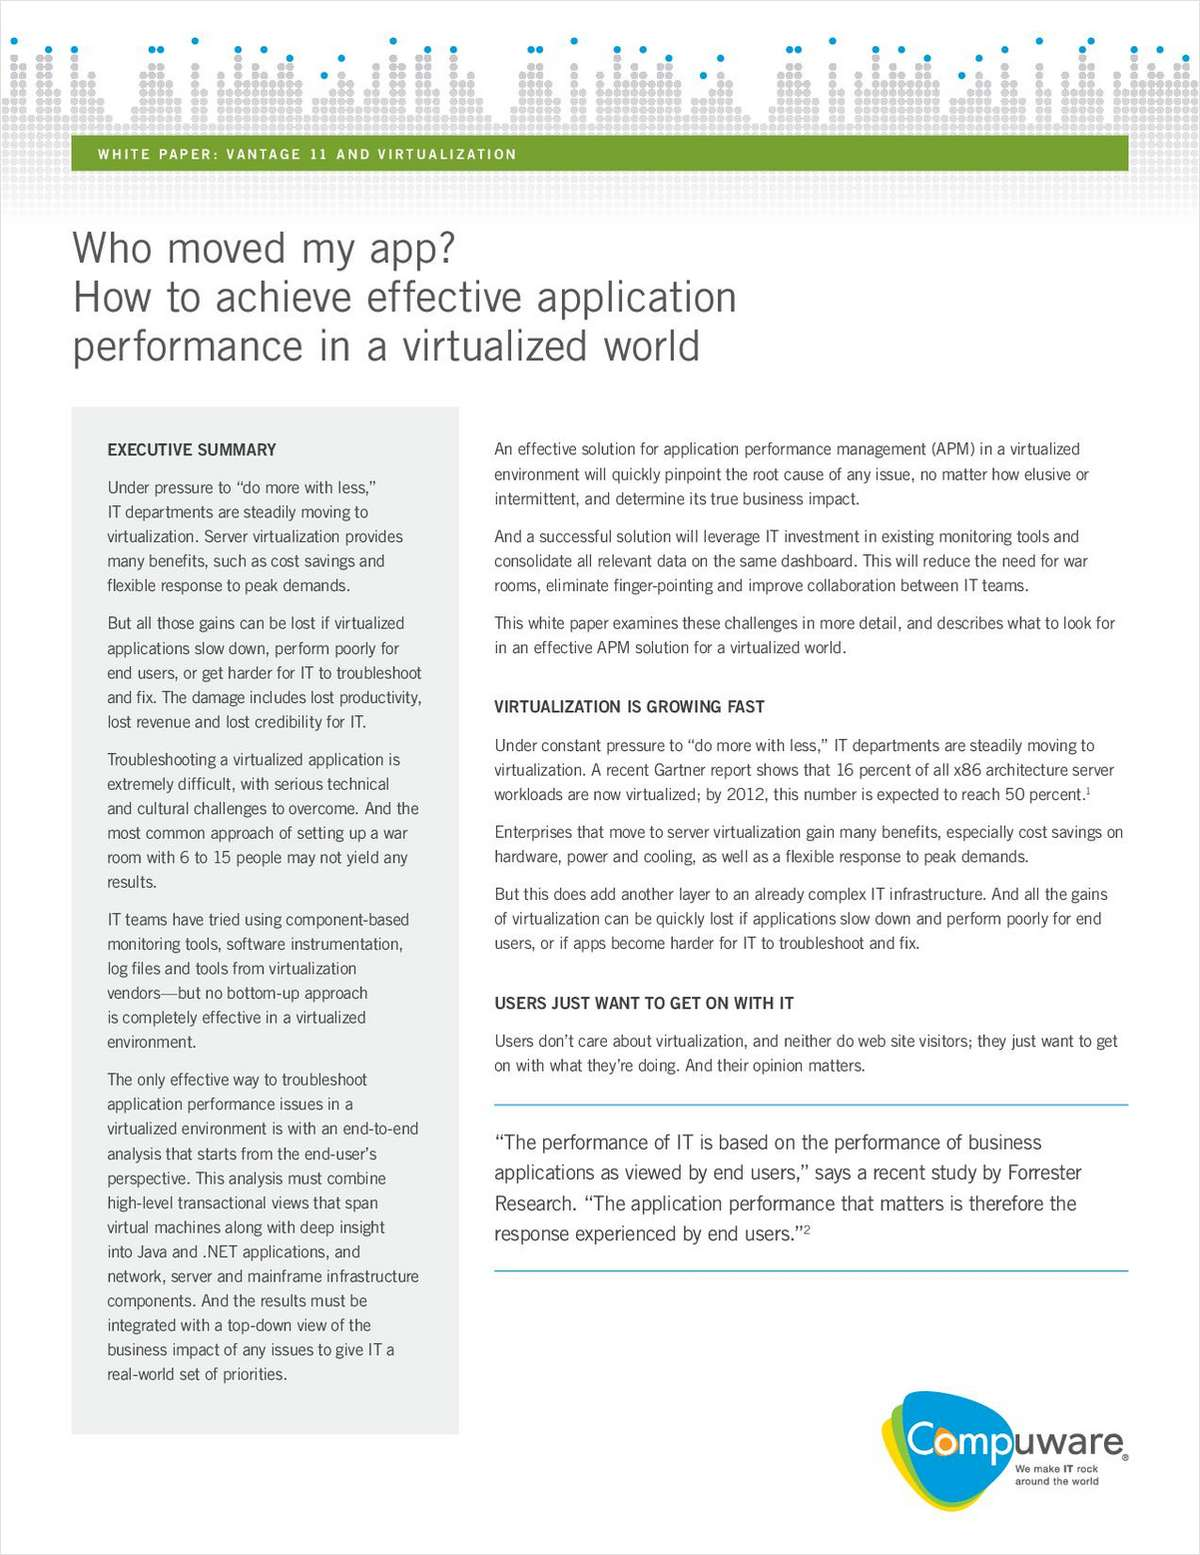 Who Moved My App? How to Achieve Effective Application Performance in a Virtualized World